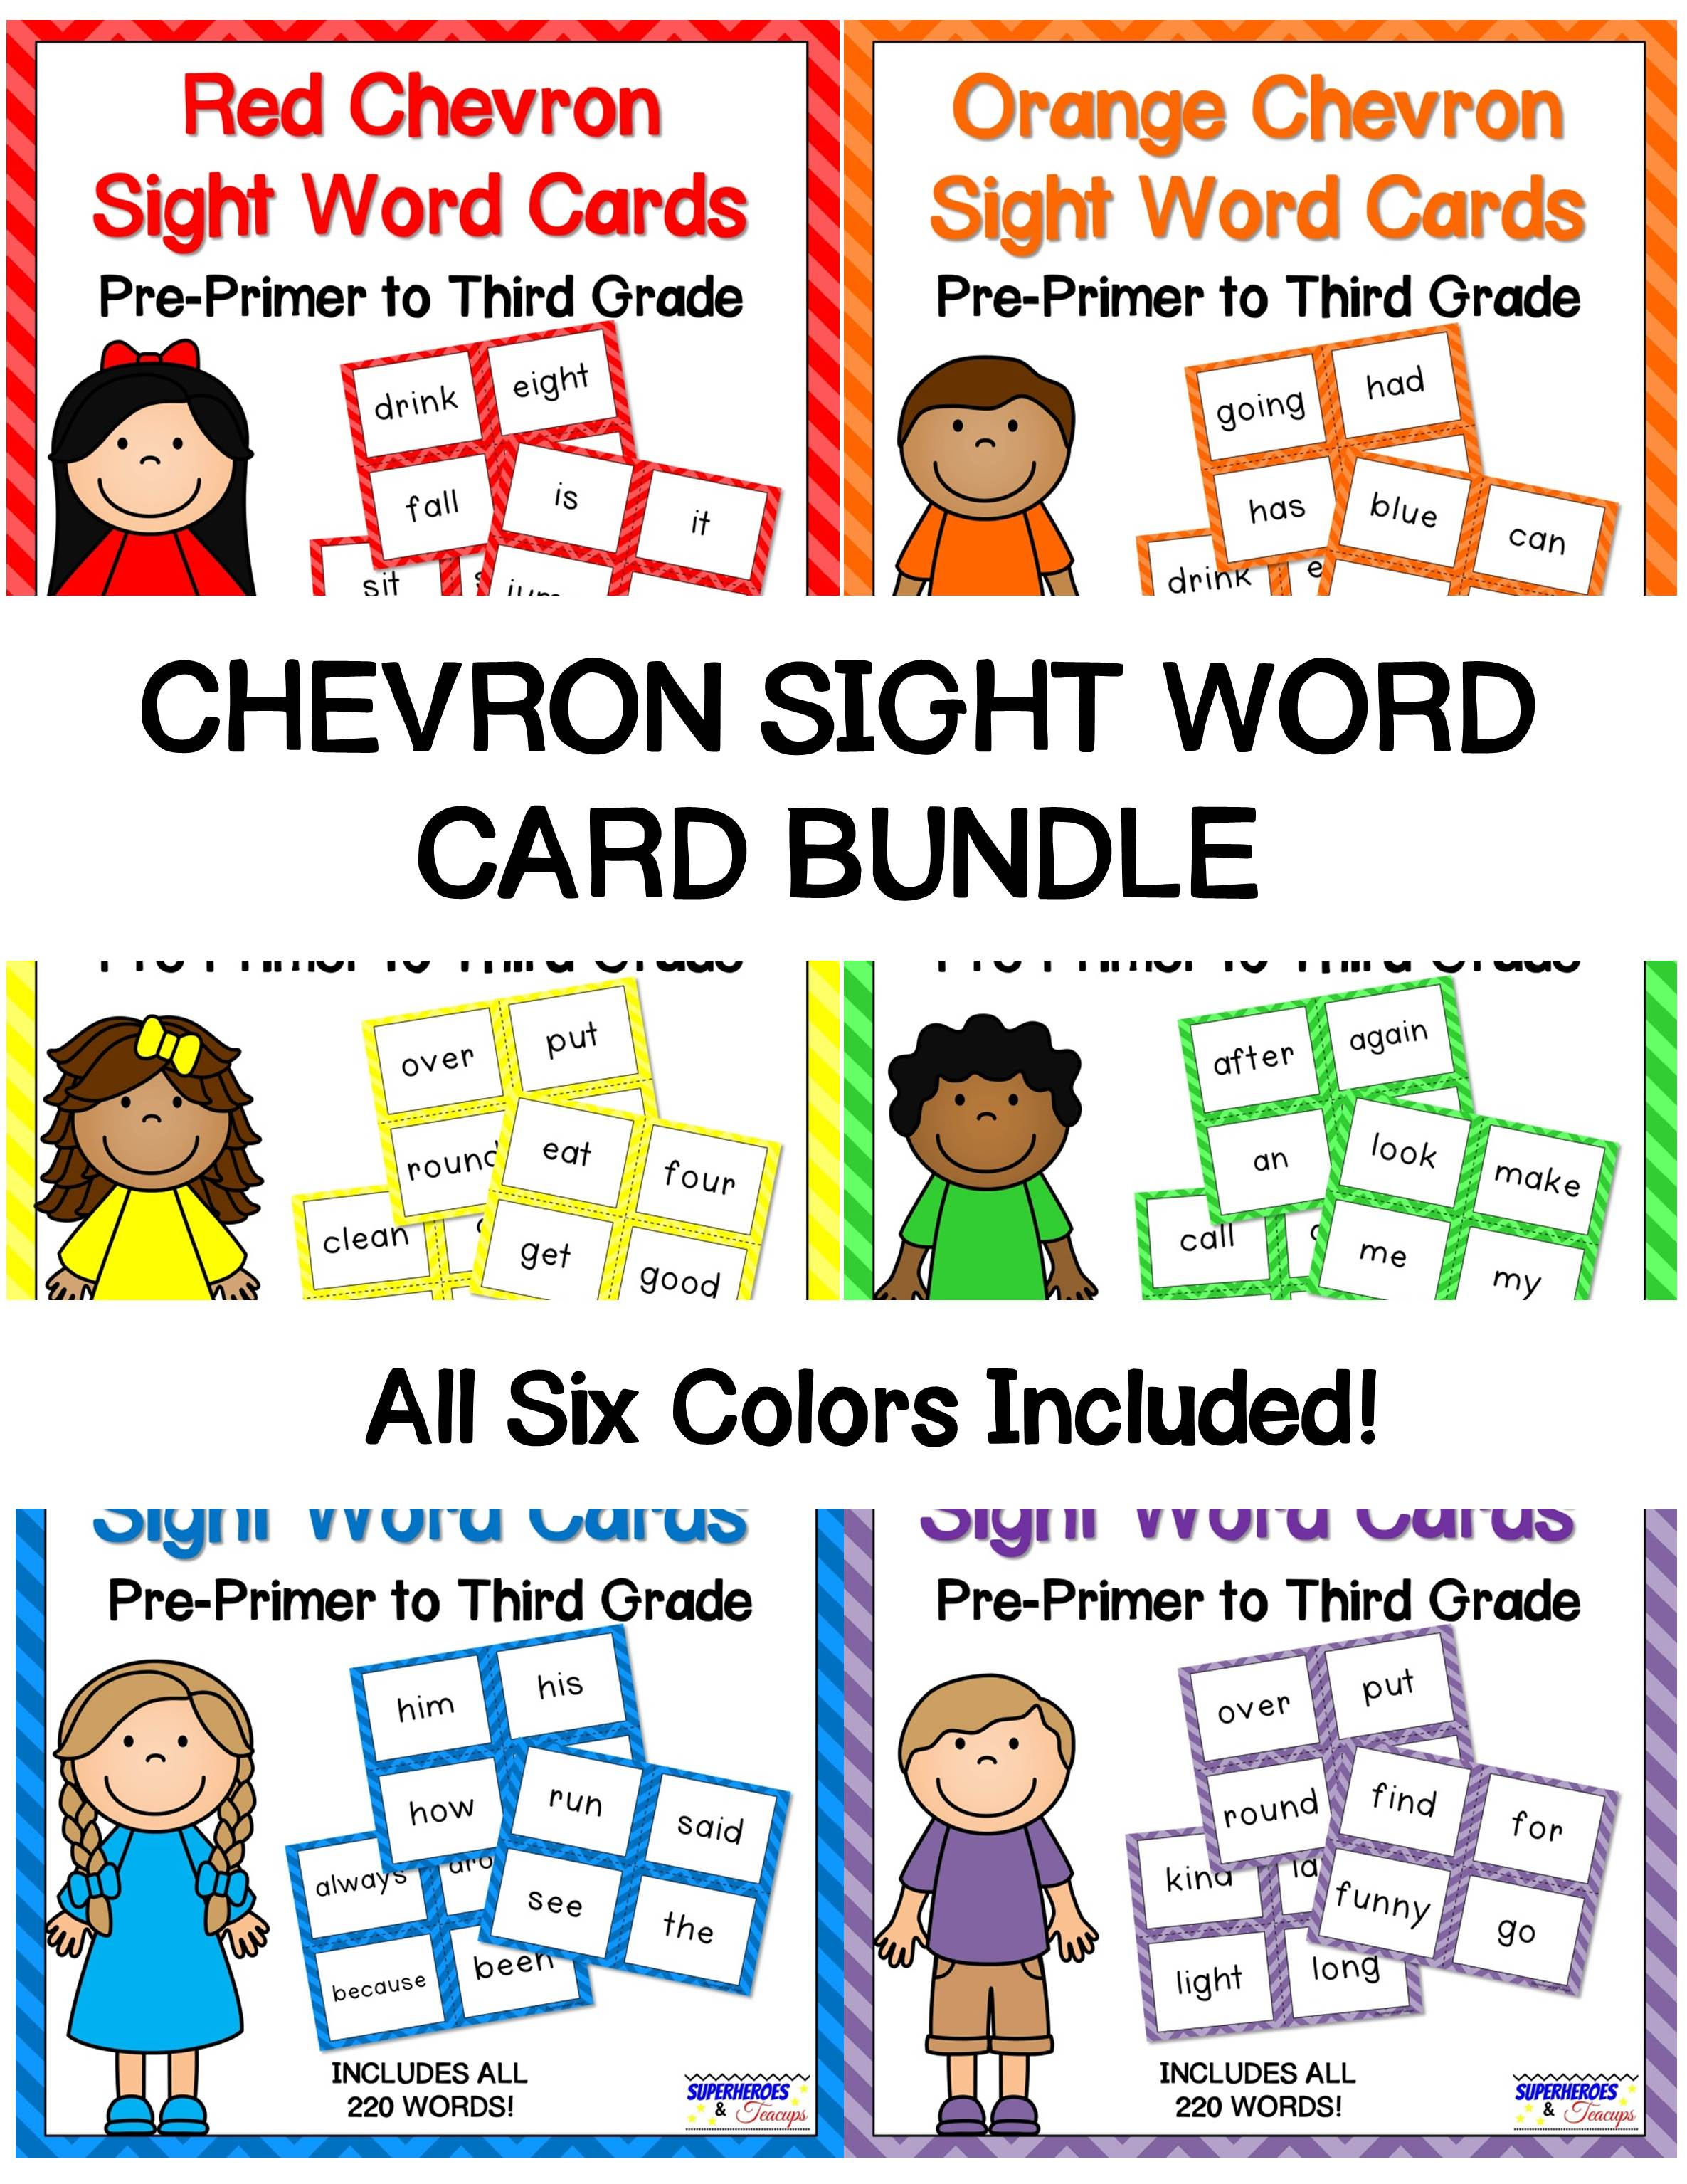 Chevron Sight Word Cards Bundle For Early Readers